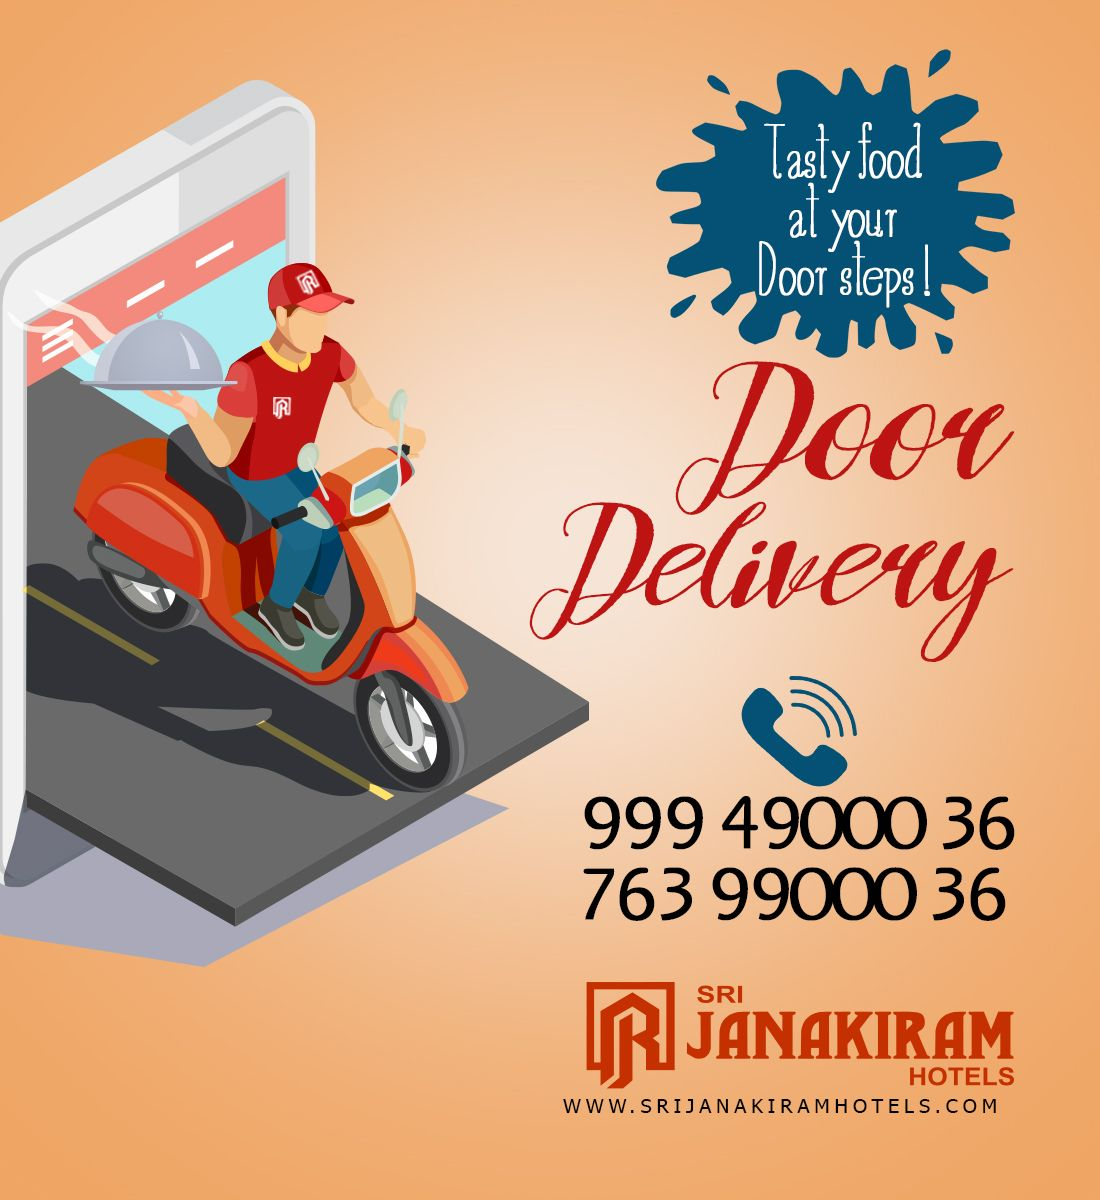 Traditional and tasty foods now at your doorsteps. Call ...